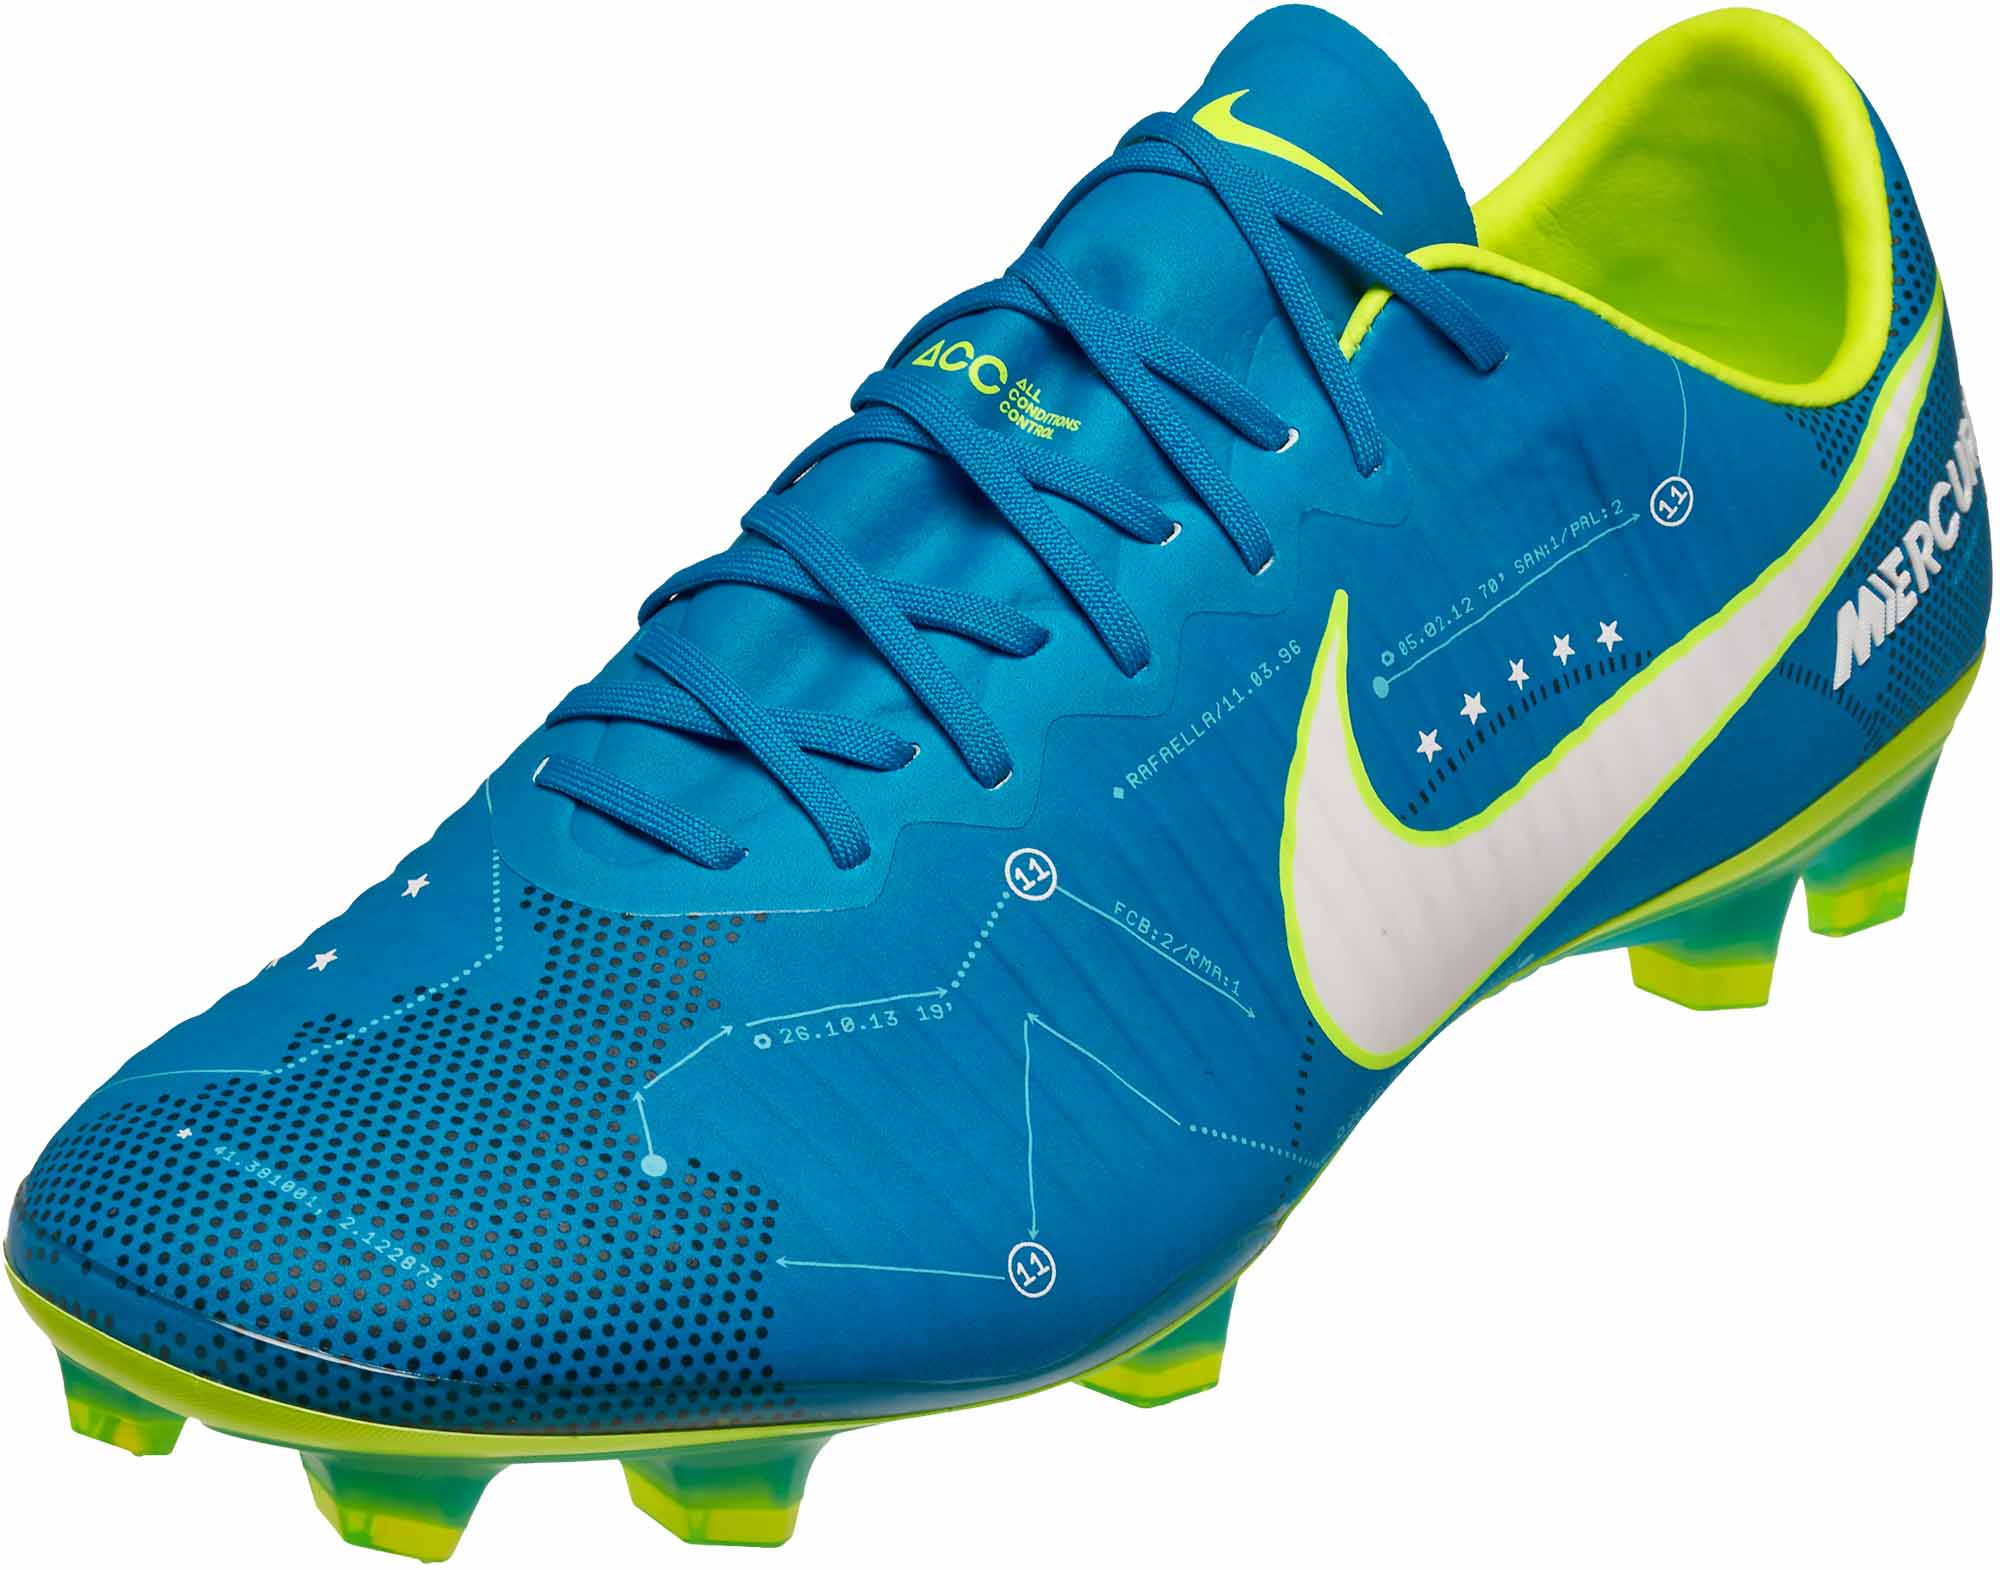 nike mercurial vapor xi fg neymar soccer cleats. Black Bedroom Furniture Sets. Home Design Ideas